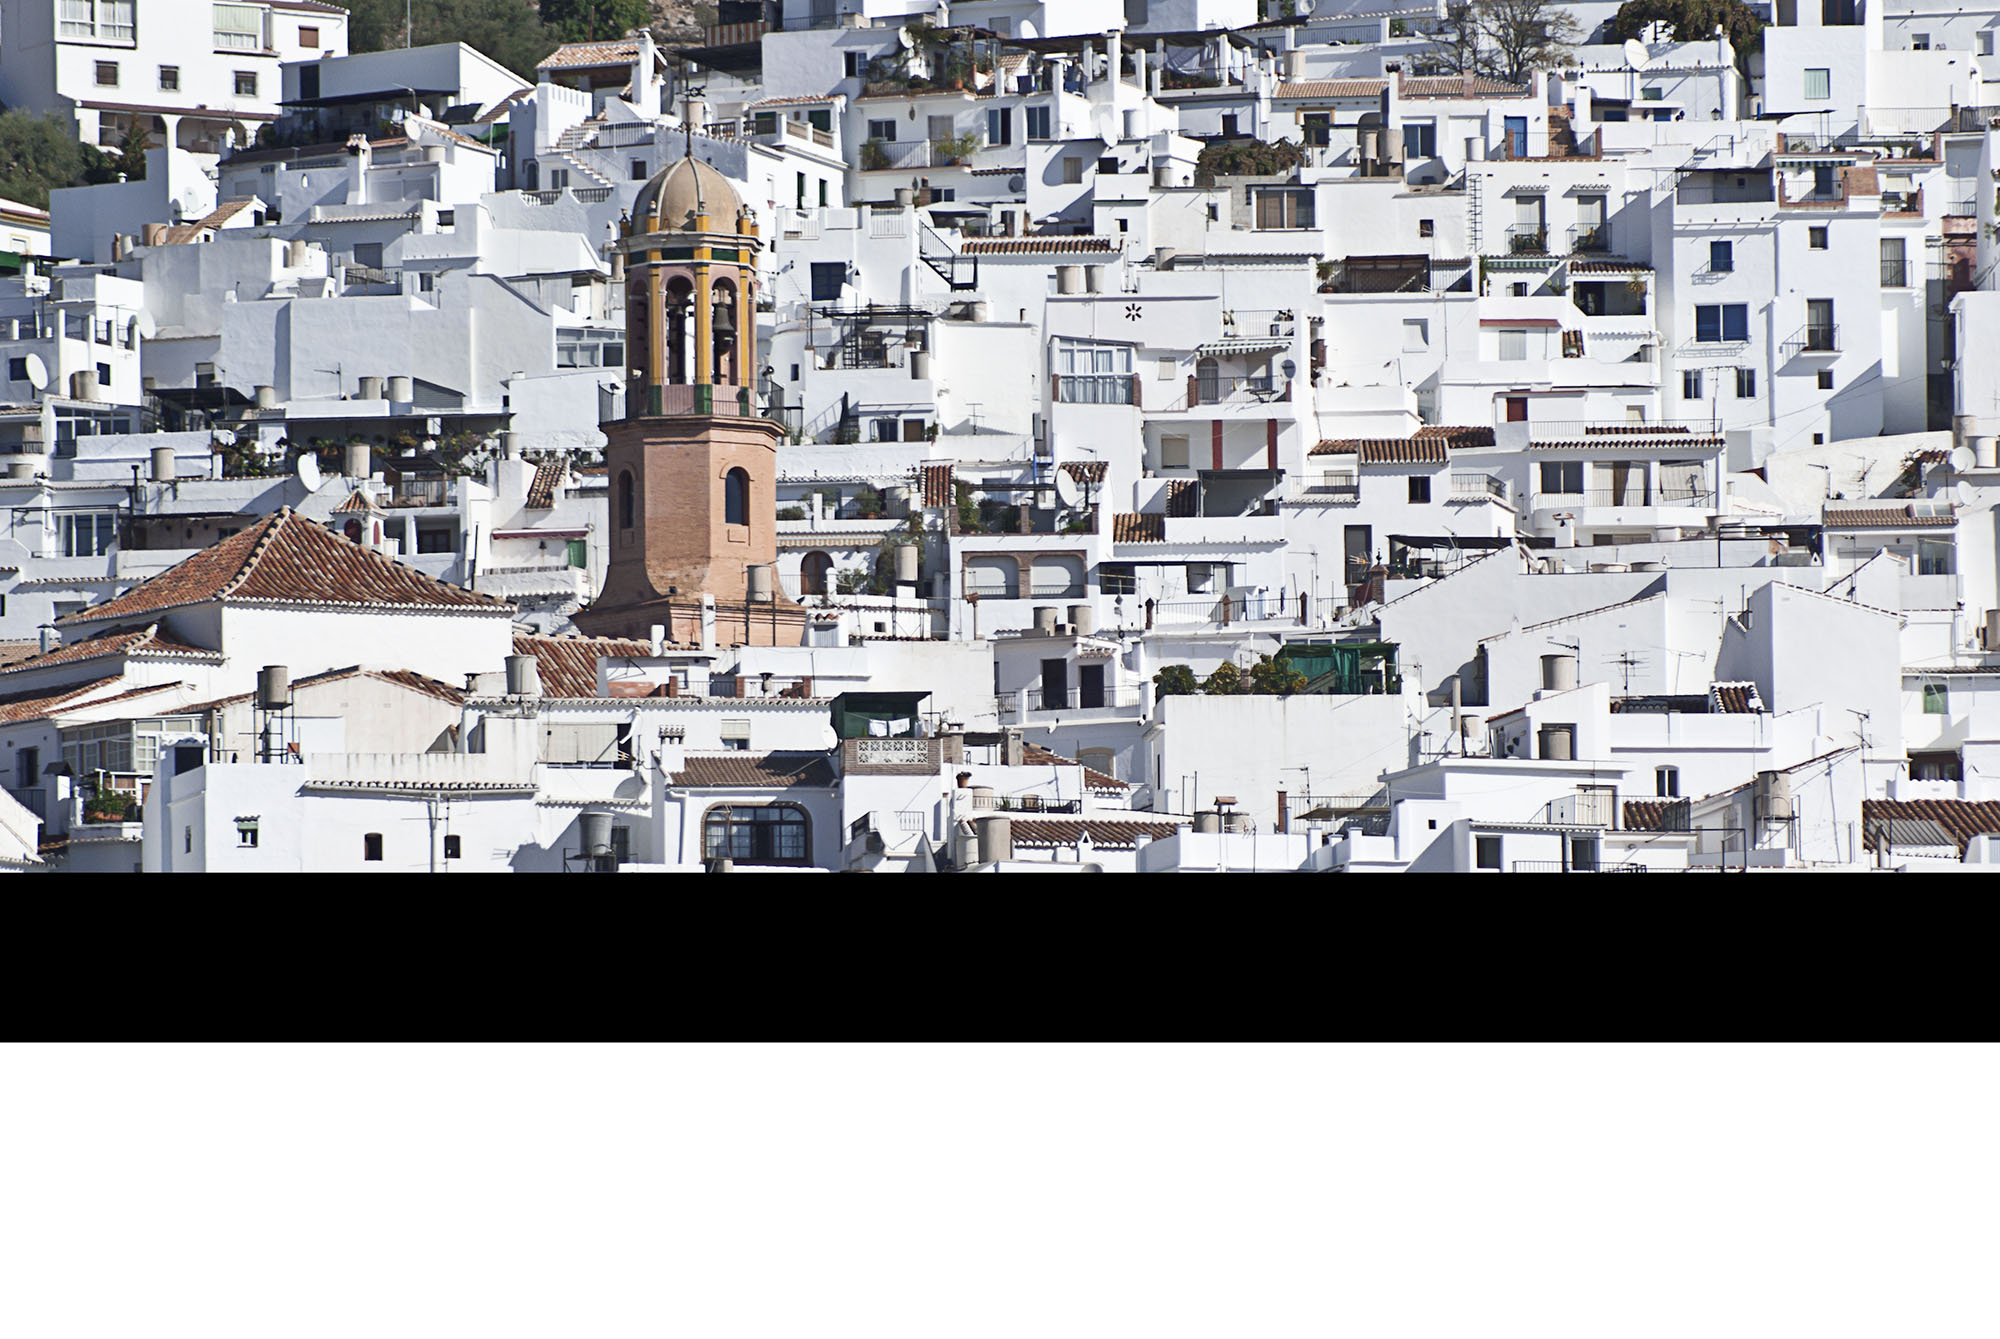 MIJAS: TRADITION AND WINE PAIRING IN A WHITE-WASHED VILLAGE